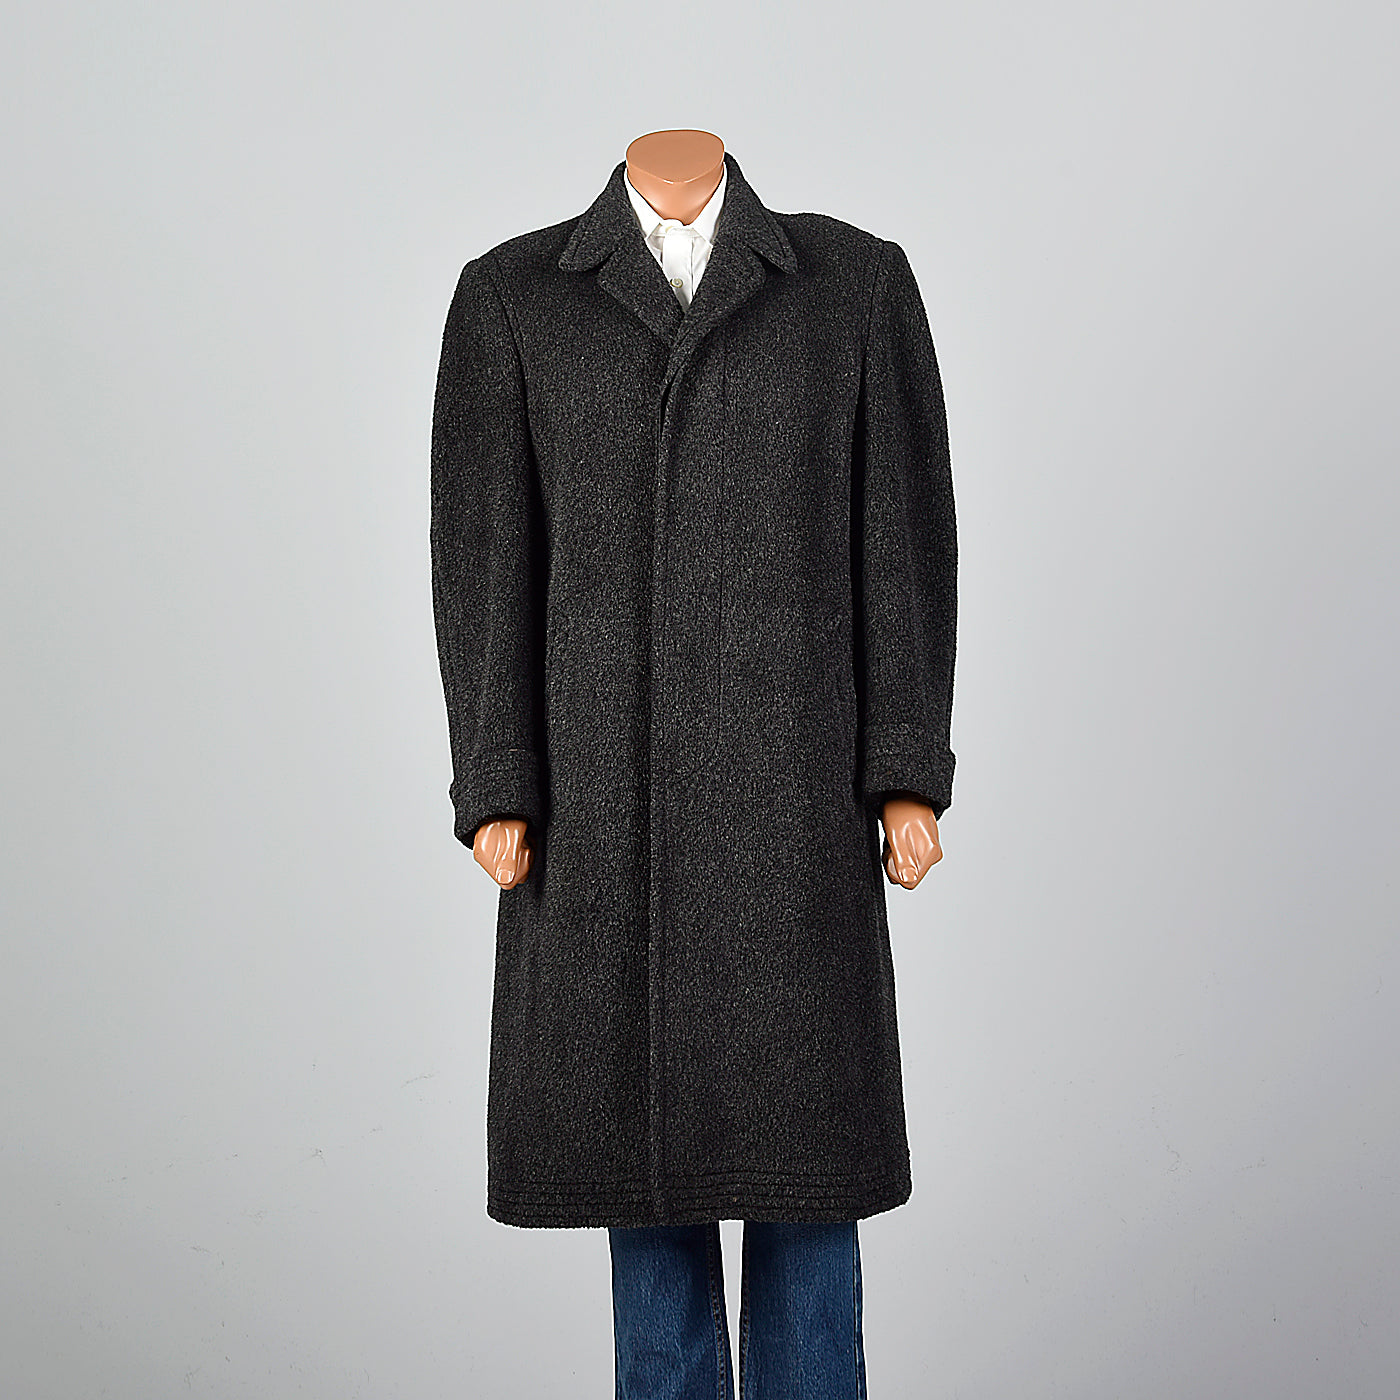 1950s Men's Rare Vicuna Winter Coat